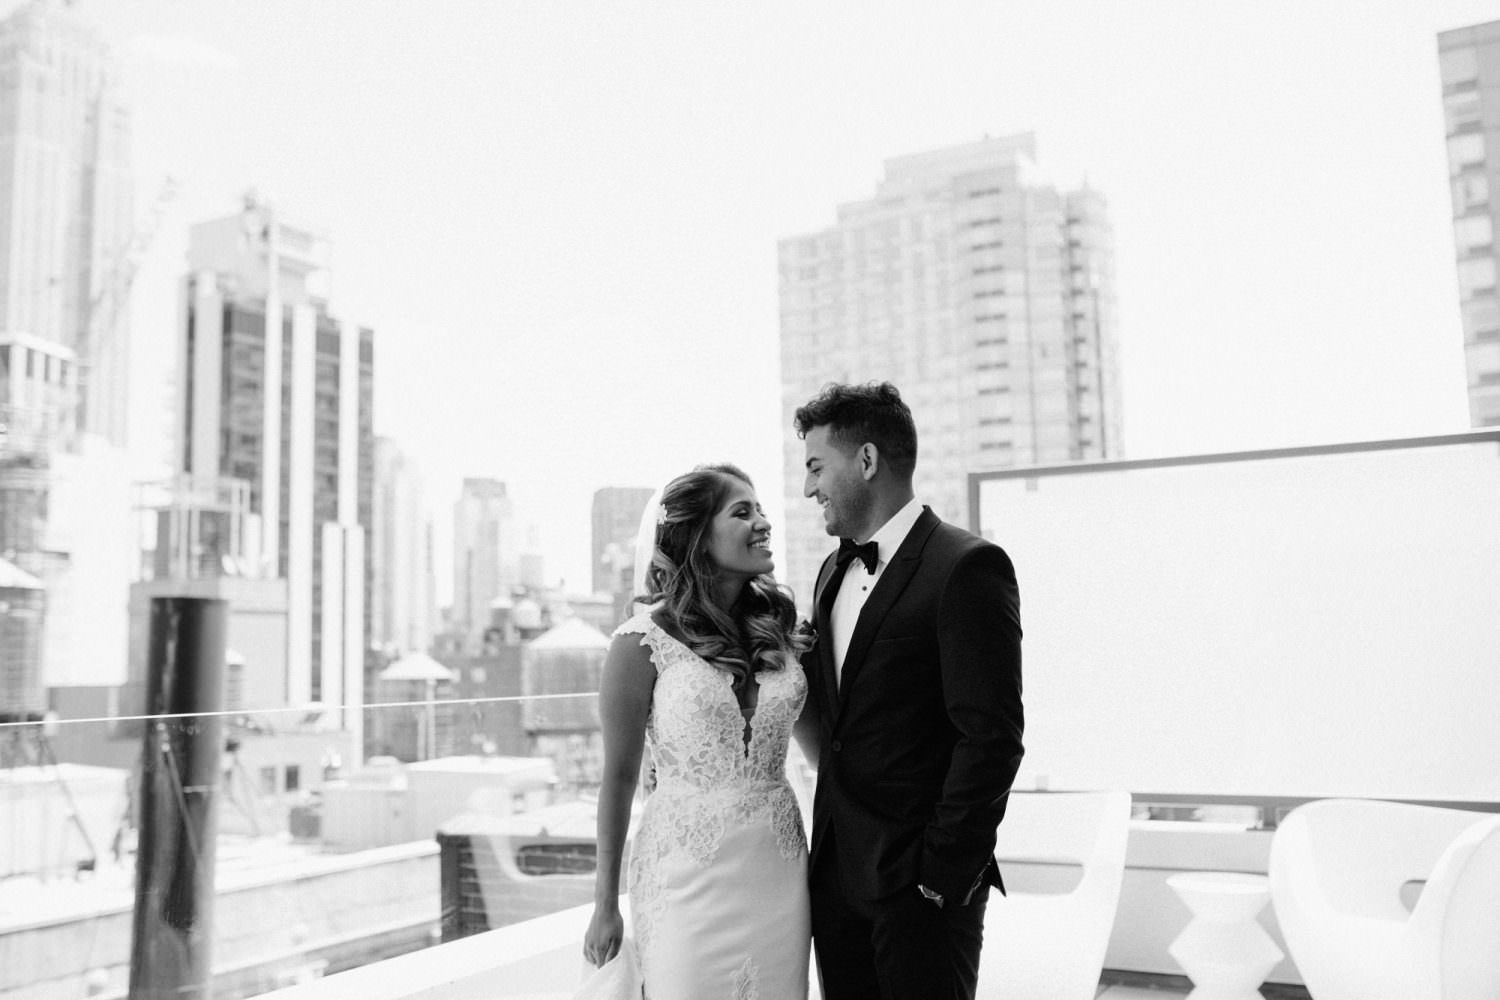 Black and white image of bride and groom on a hotel terrace in new york city